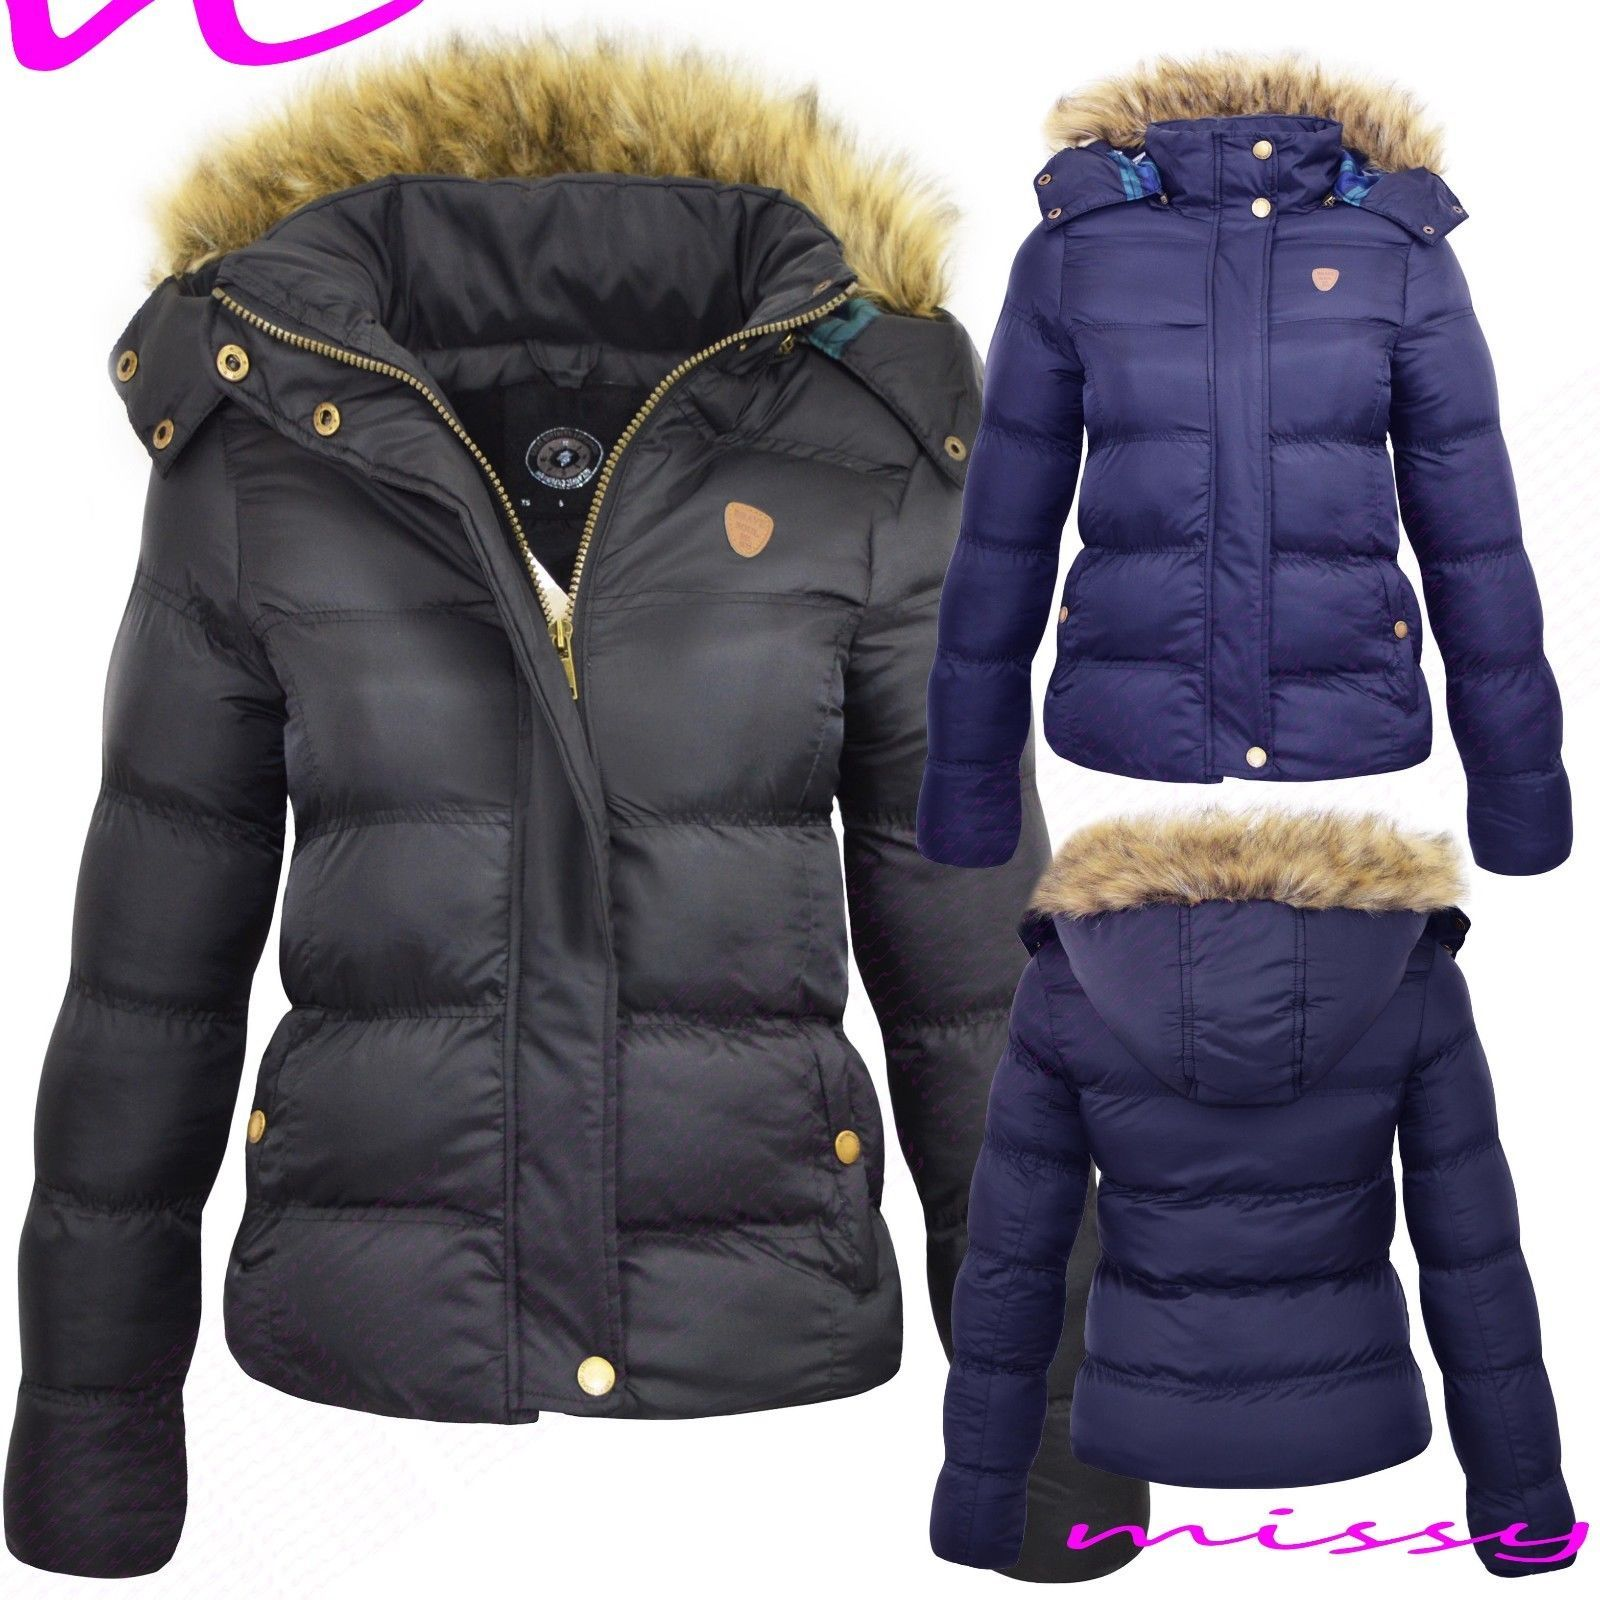 Details about WOMENS LADIES QUILTED WINTER COAT PUFFER FUR